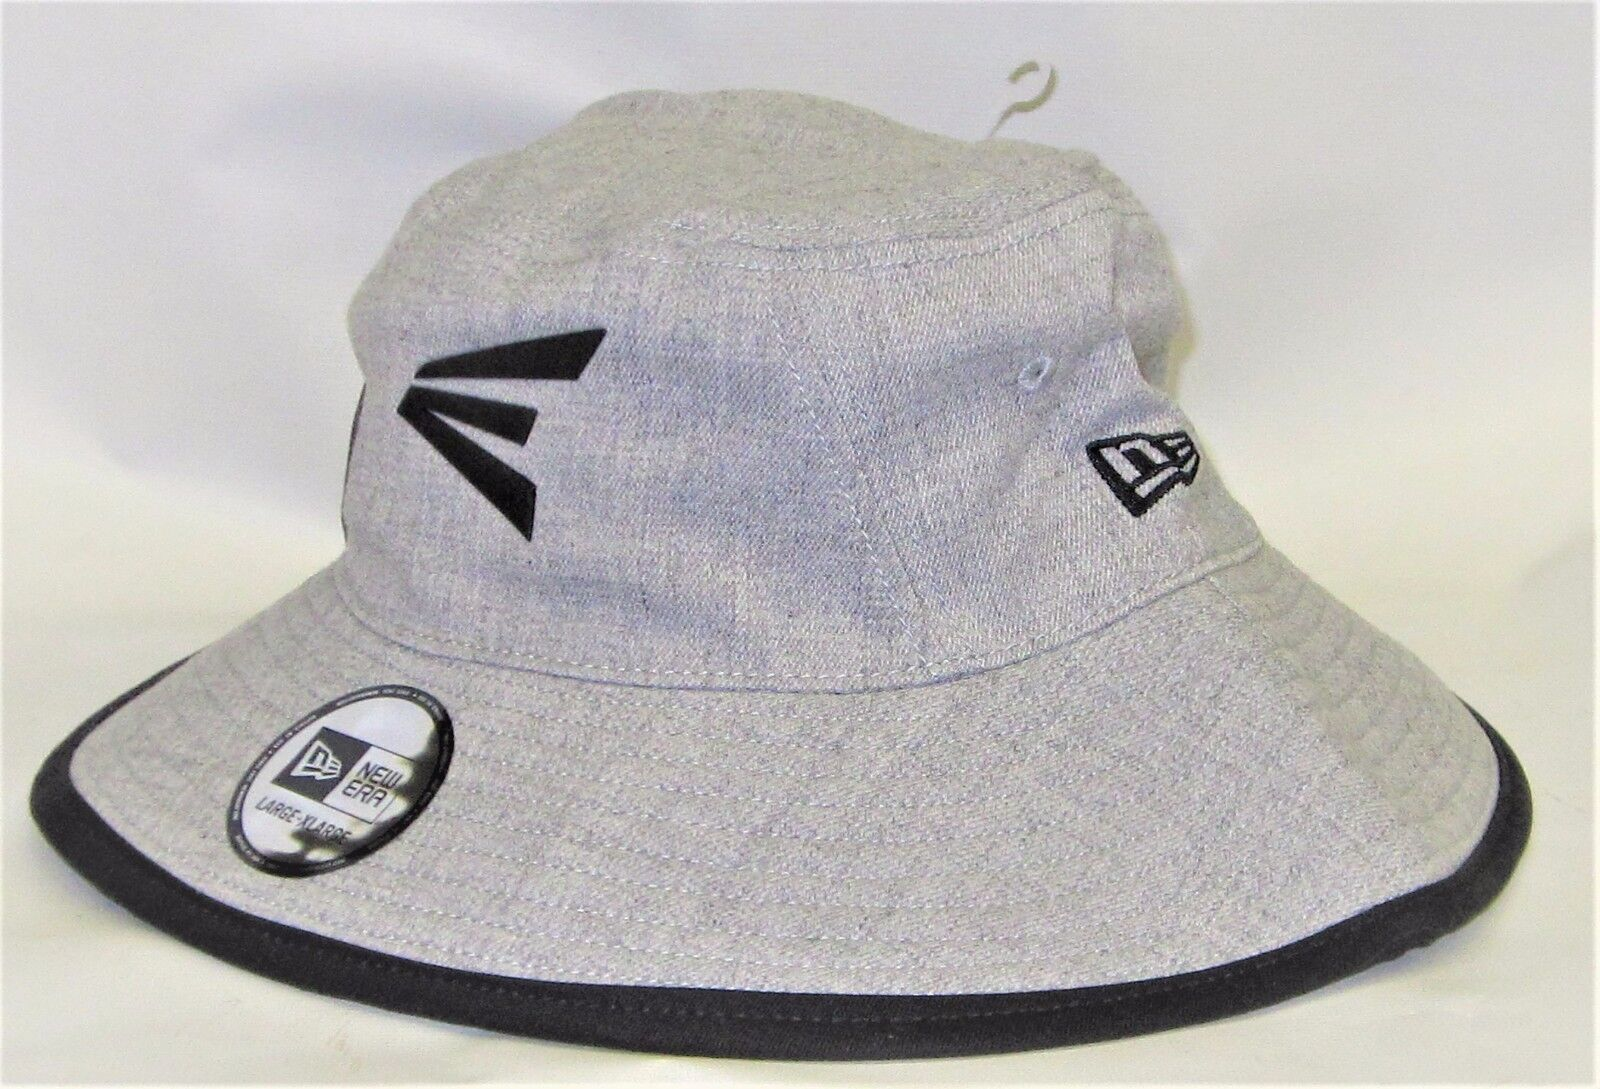 3880ae1772a Buy Easton M10 Performance Bucket Hat Grey Small medium online